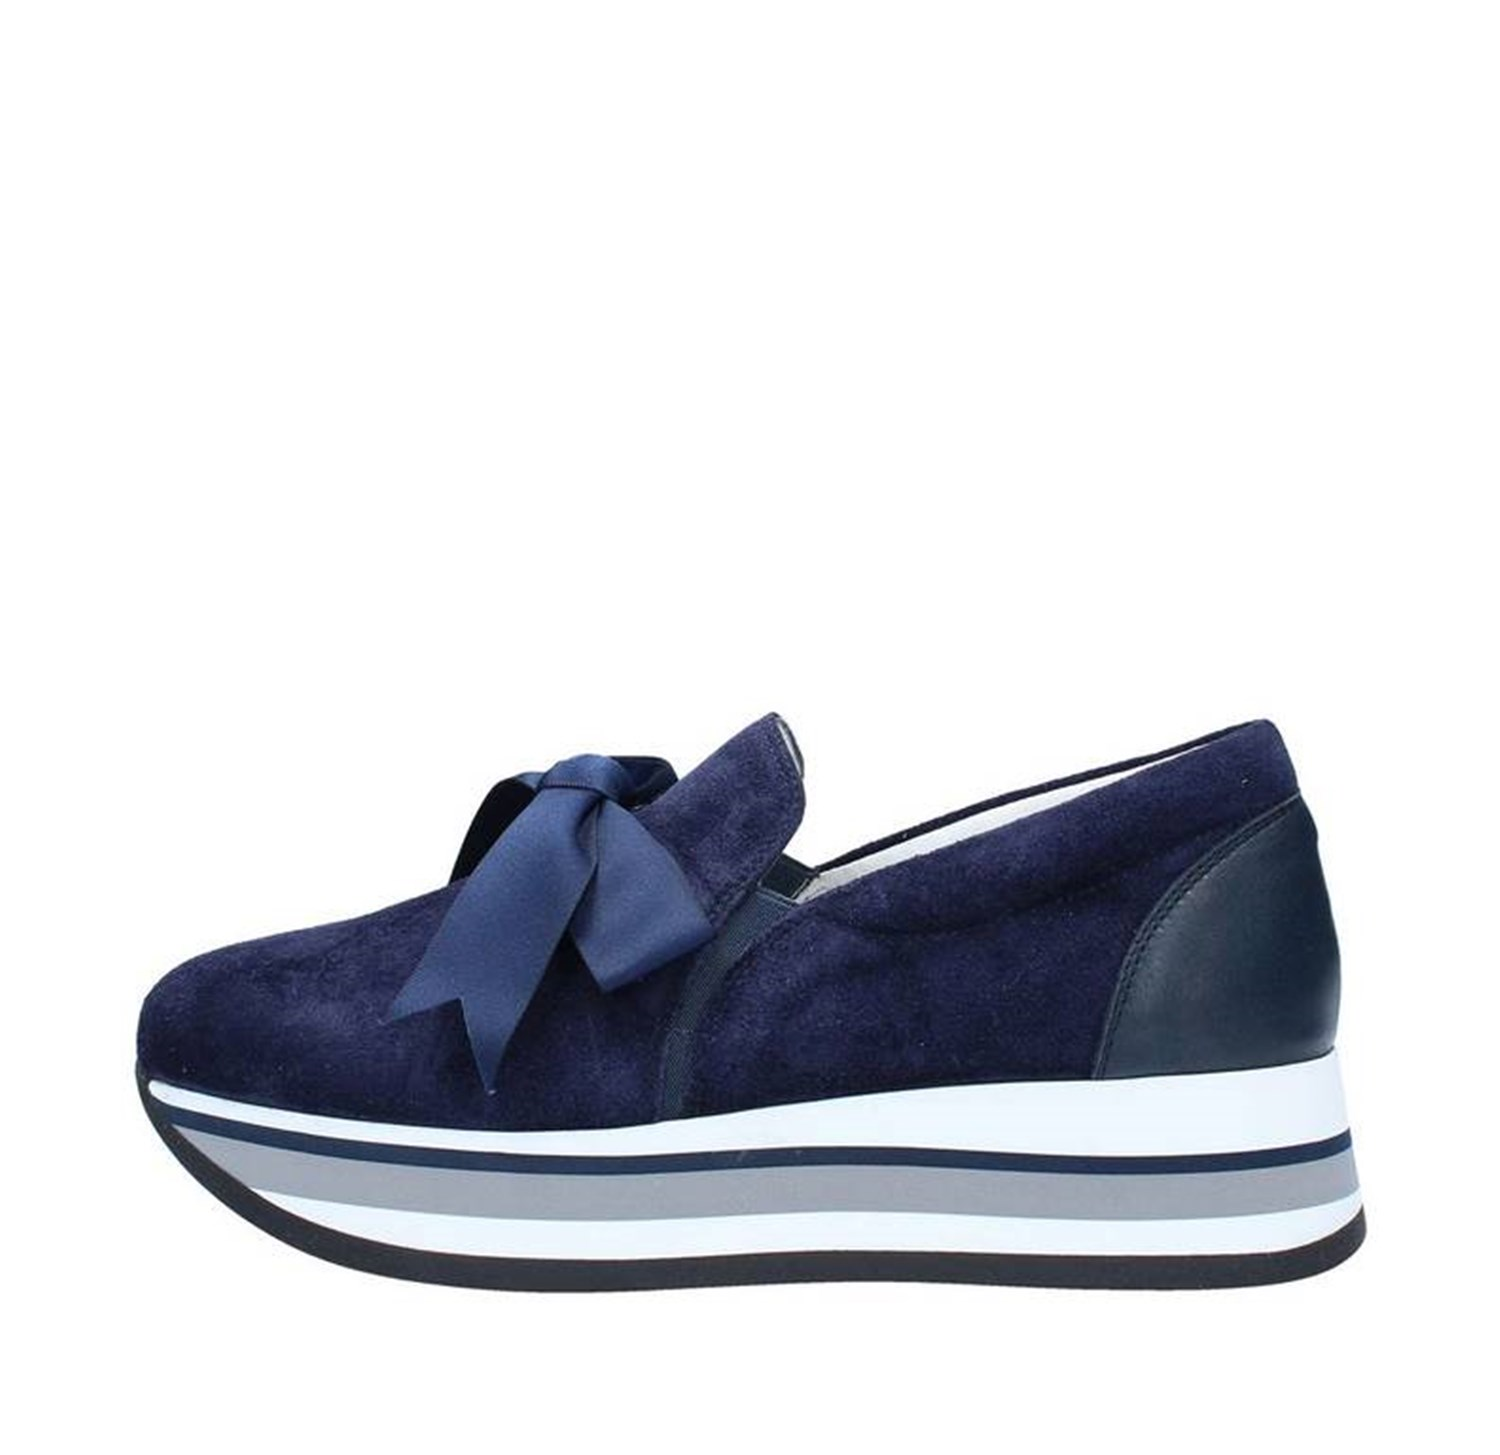 Triver Flight Shoes Woman With wedge BLUE 232-09C